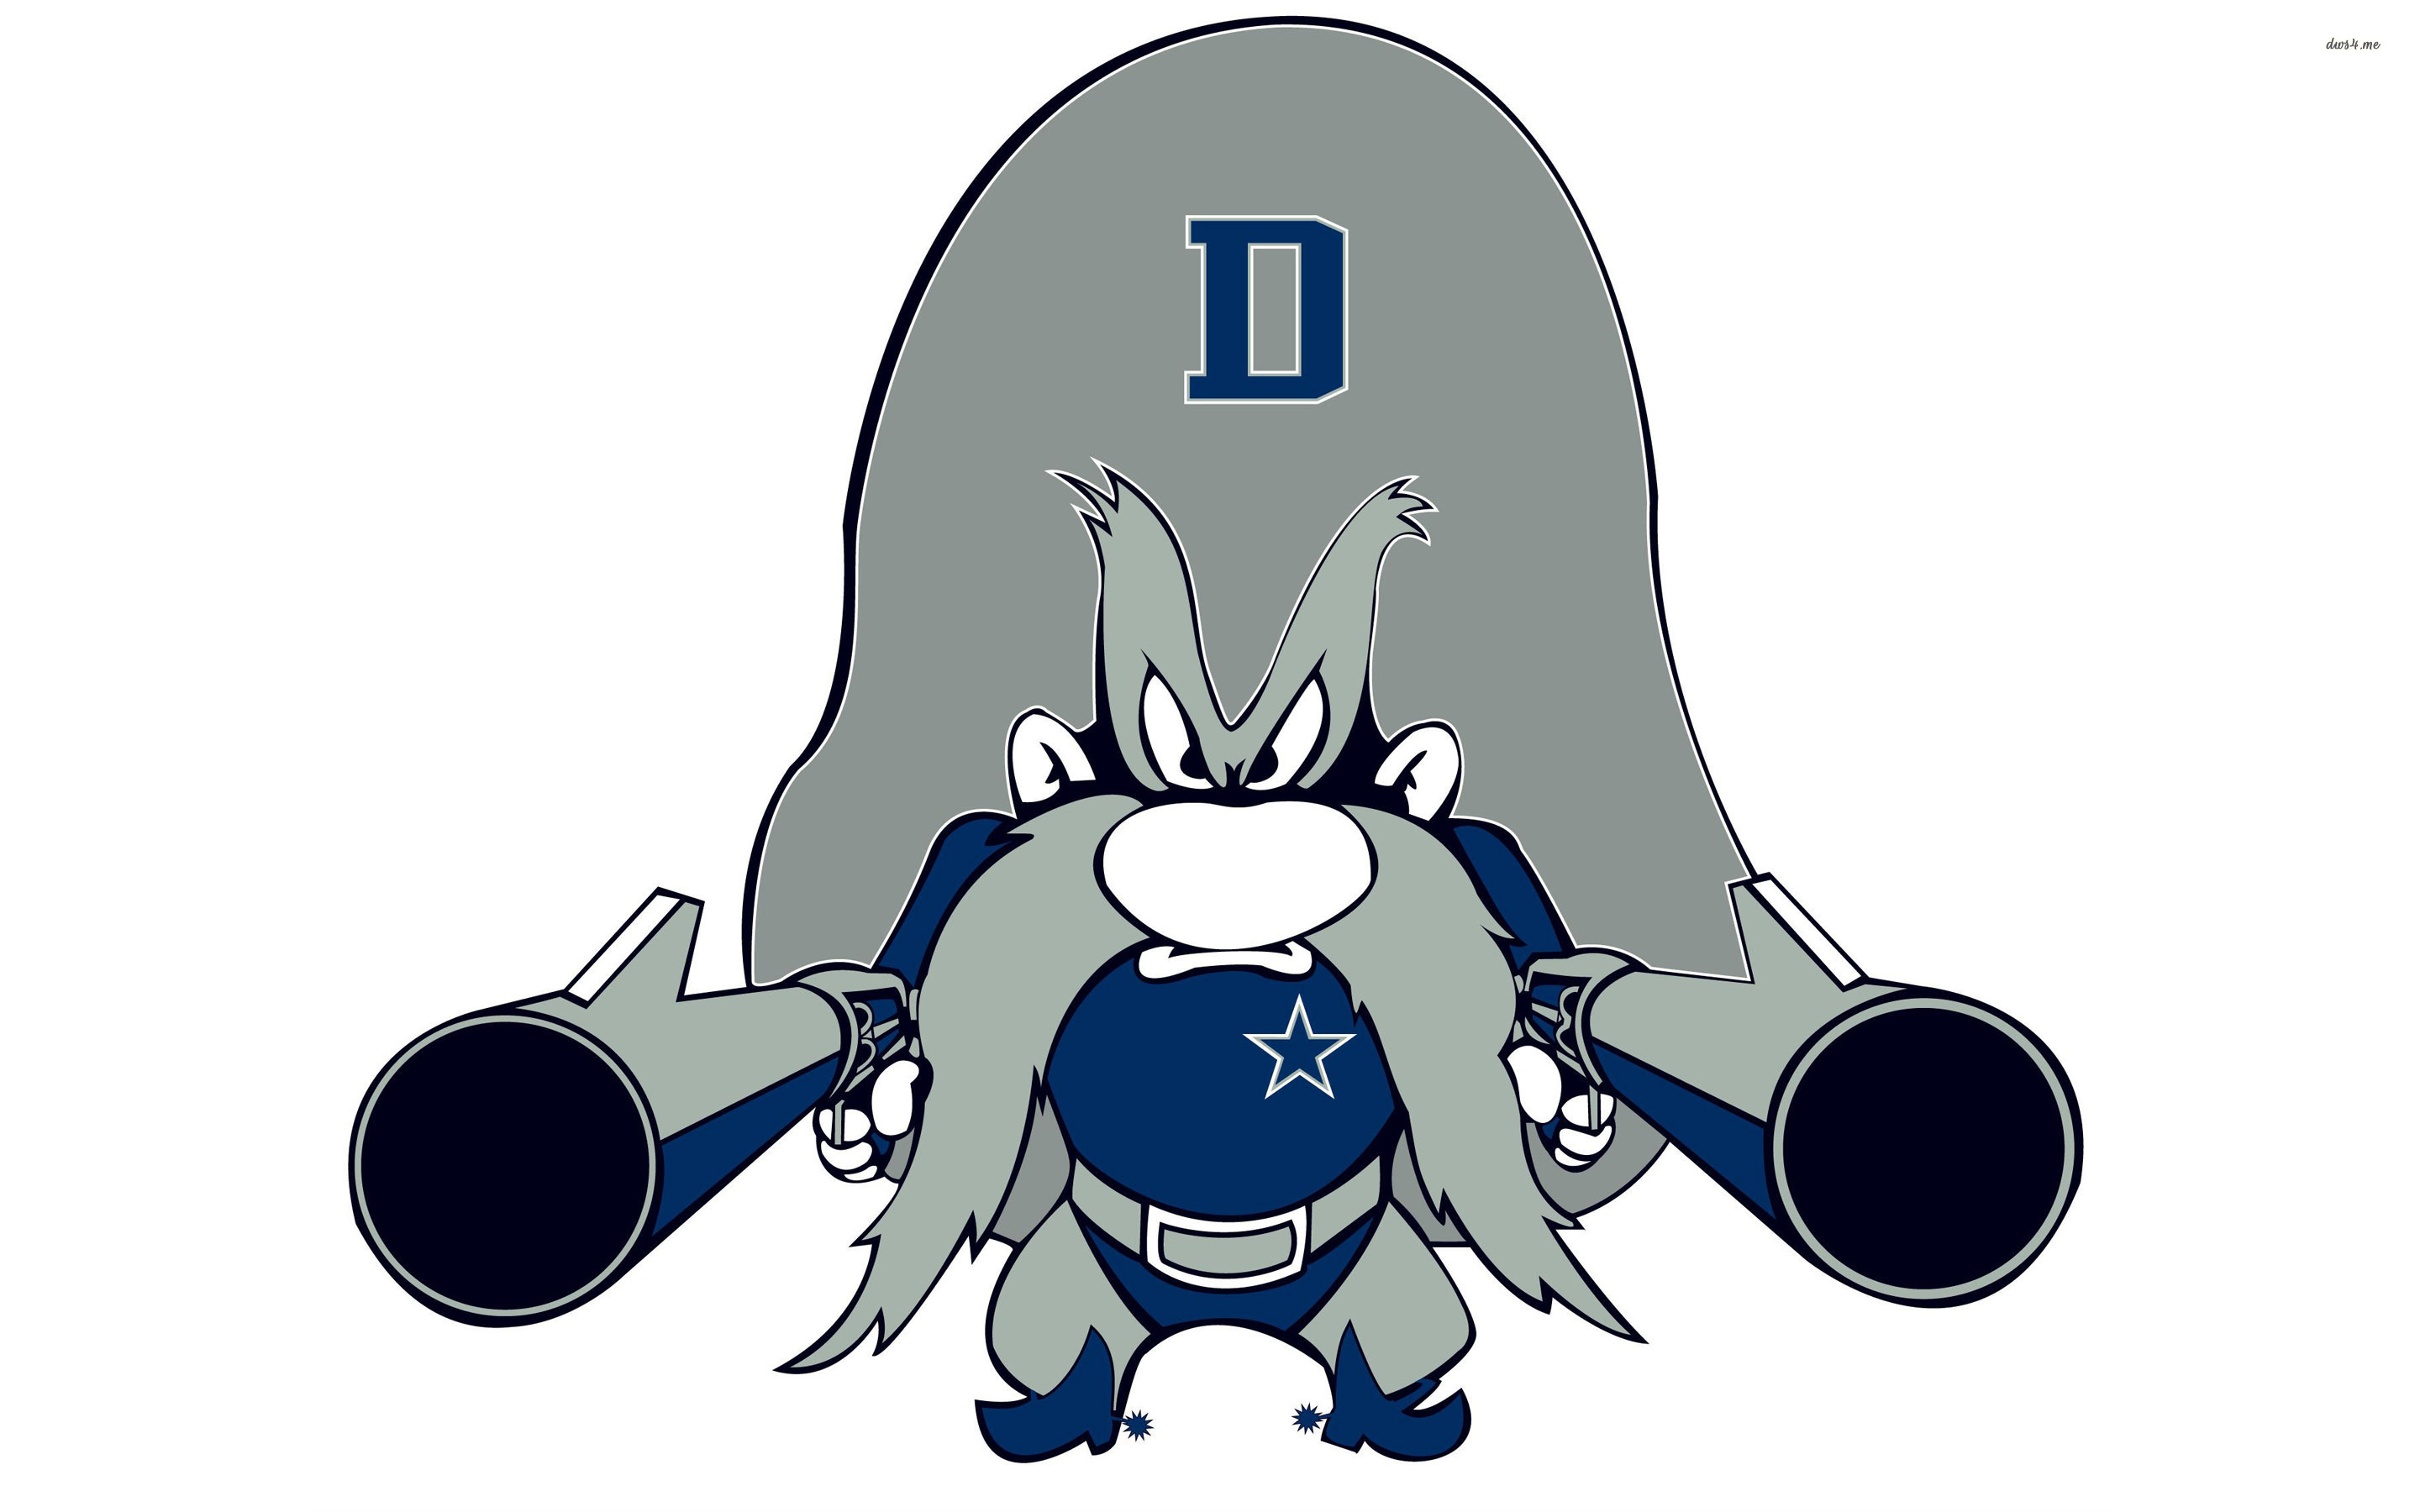 Dallas cowboys clipart clip art. At getdrawings com free